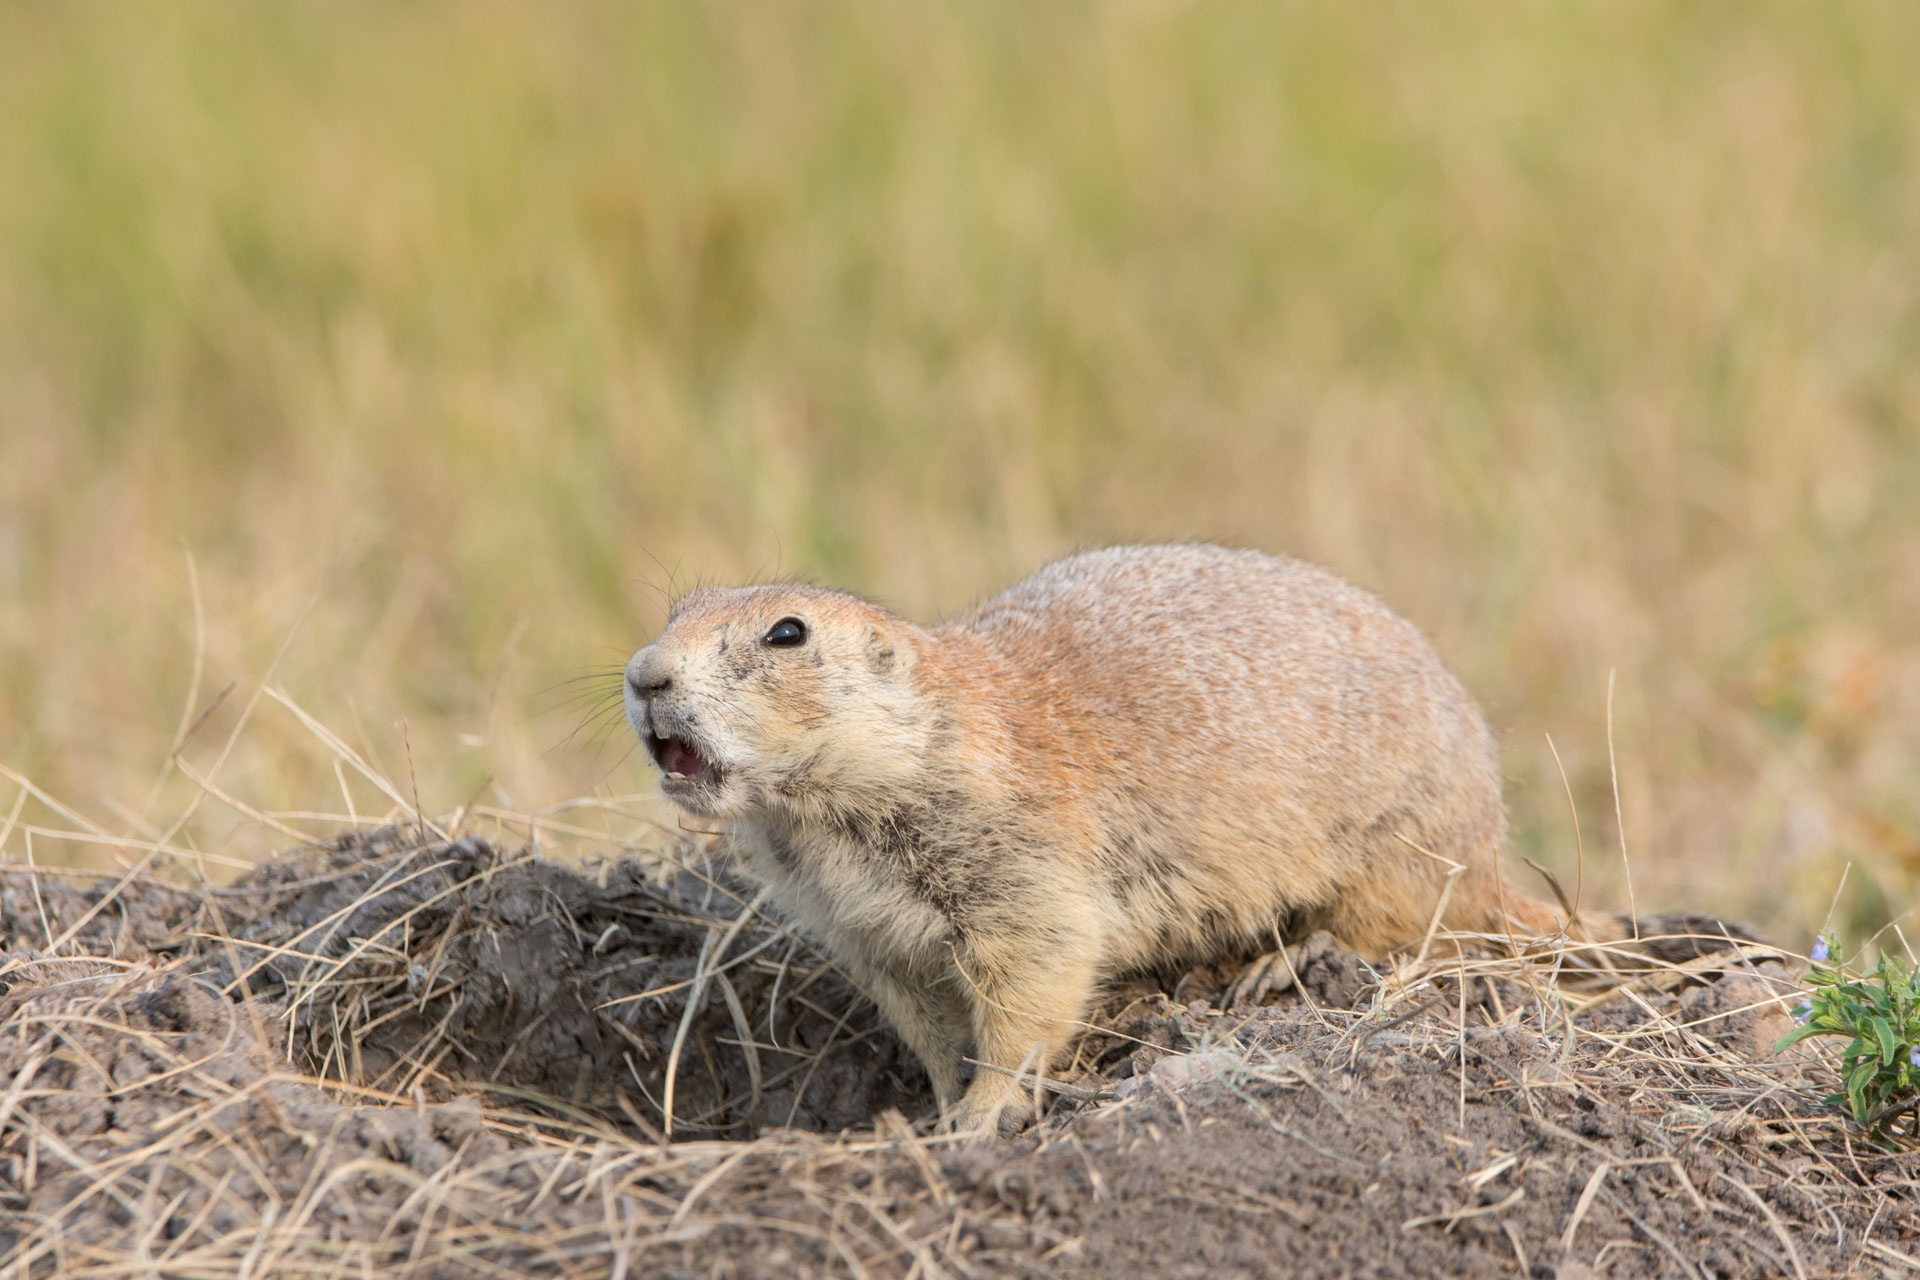 Prairie Dog ( Cynomys ludovicianus)  warning the colony of my presence - Badlands NP, SD  Nikon D7200 + Nikon 200-400mm f4.0 VR